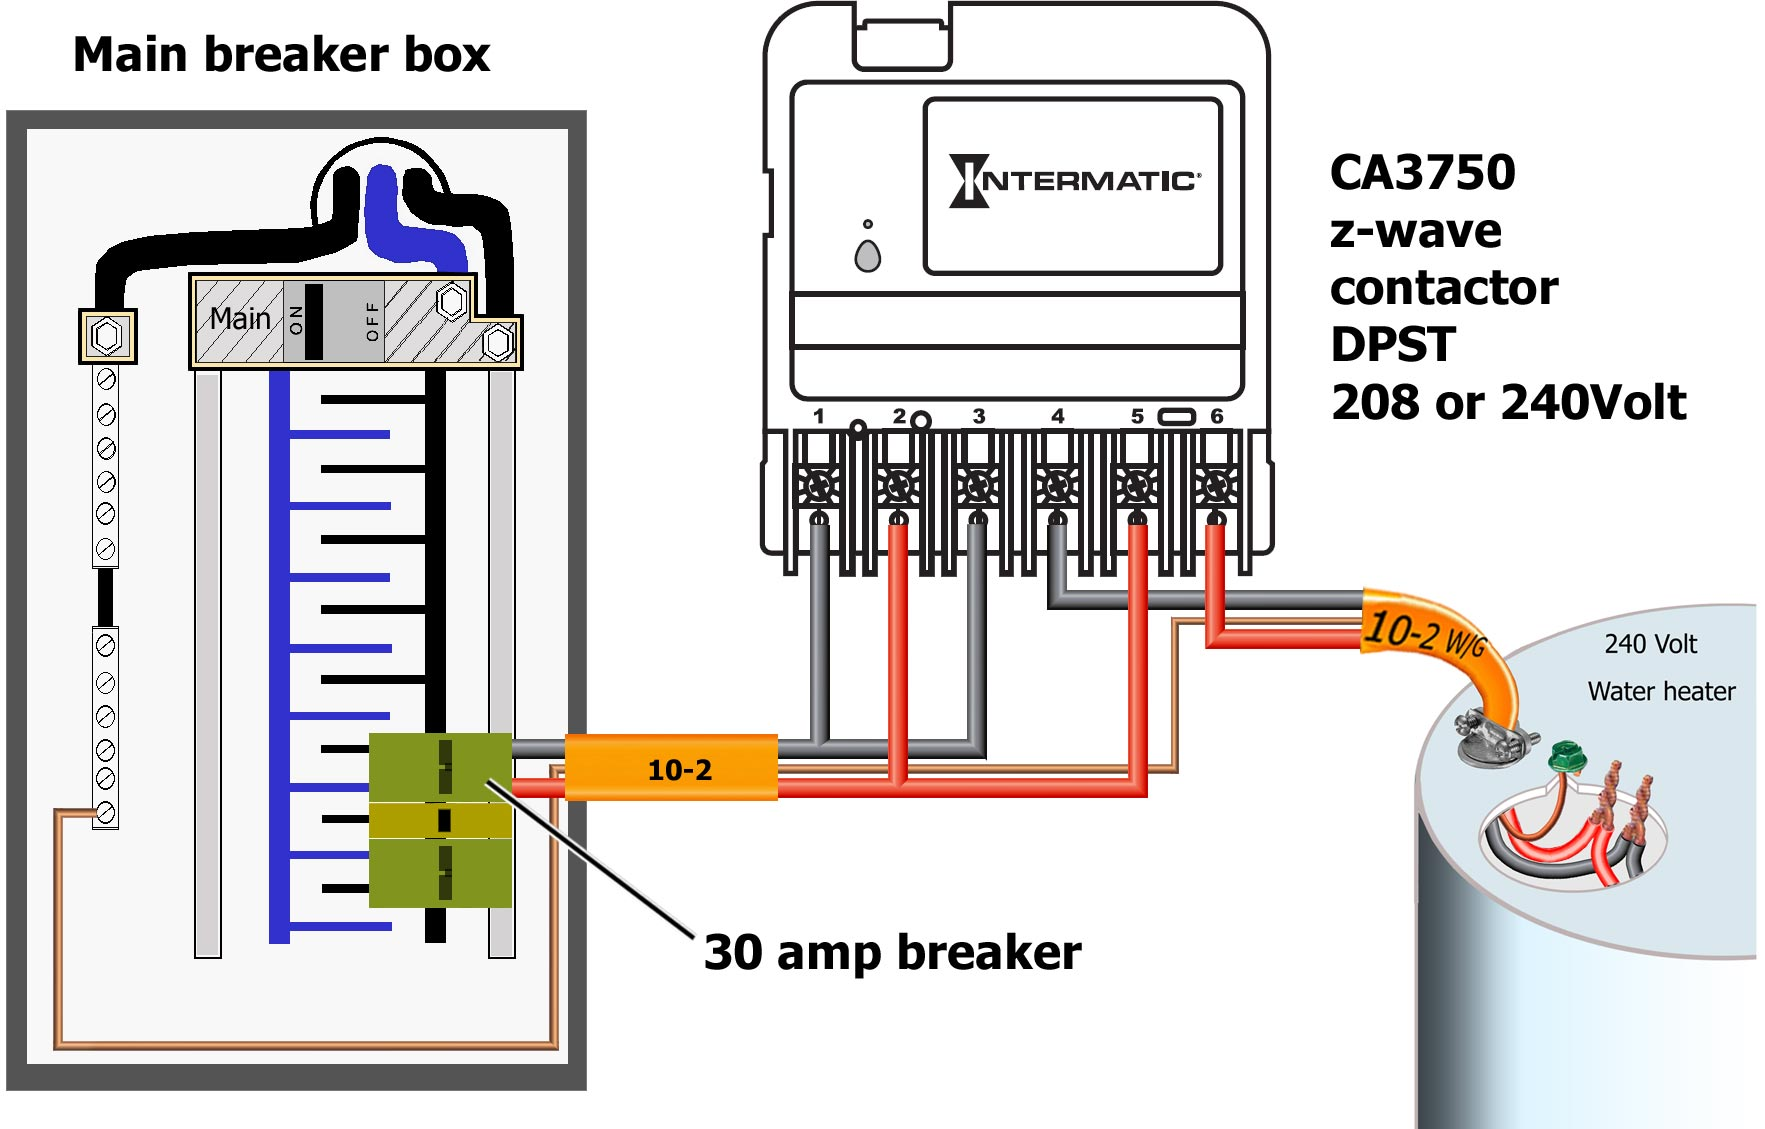 How To Wire Intermatic Ca3750 Master Spa Wiring Diagram Larger Image